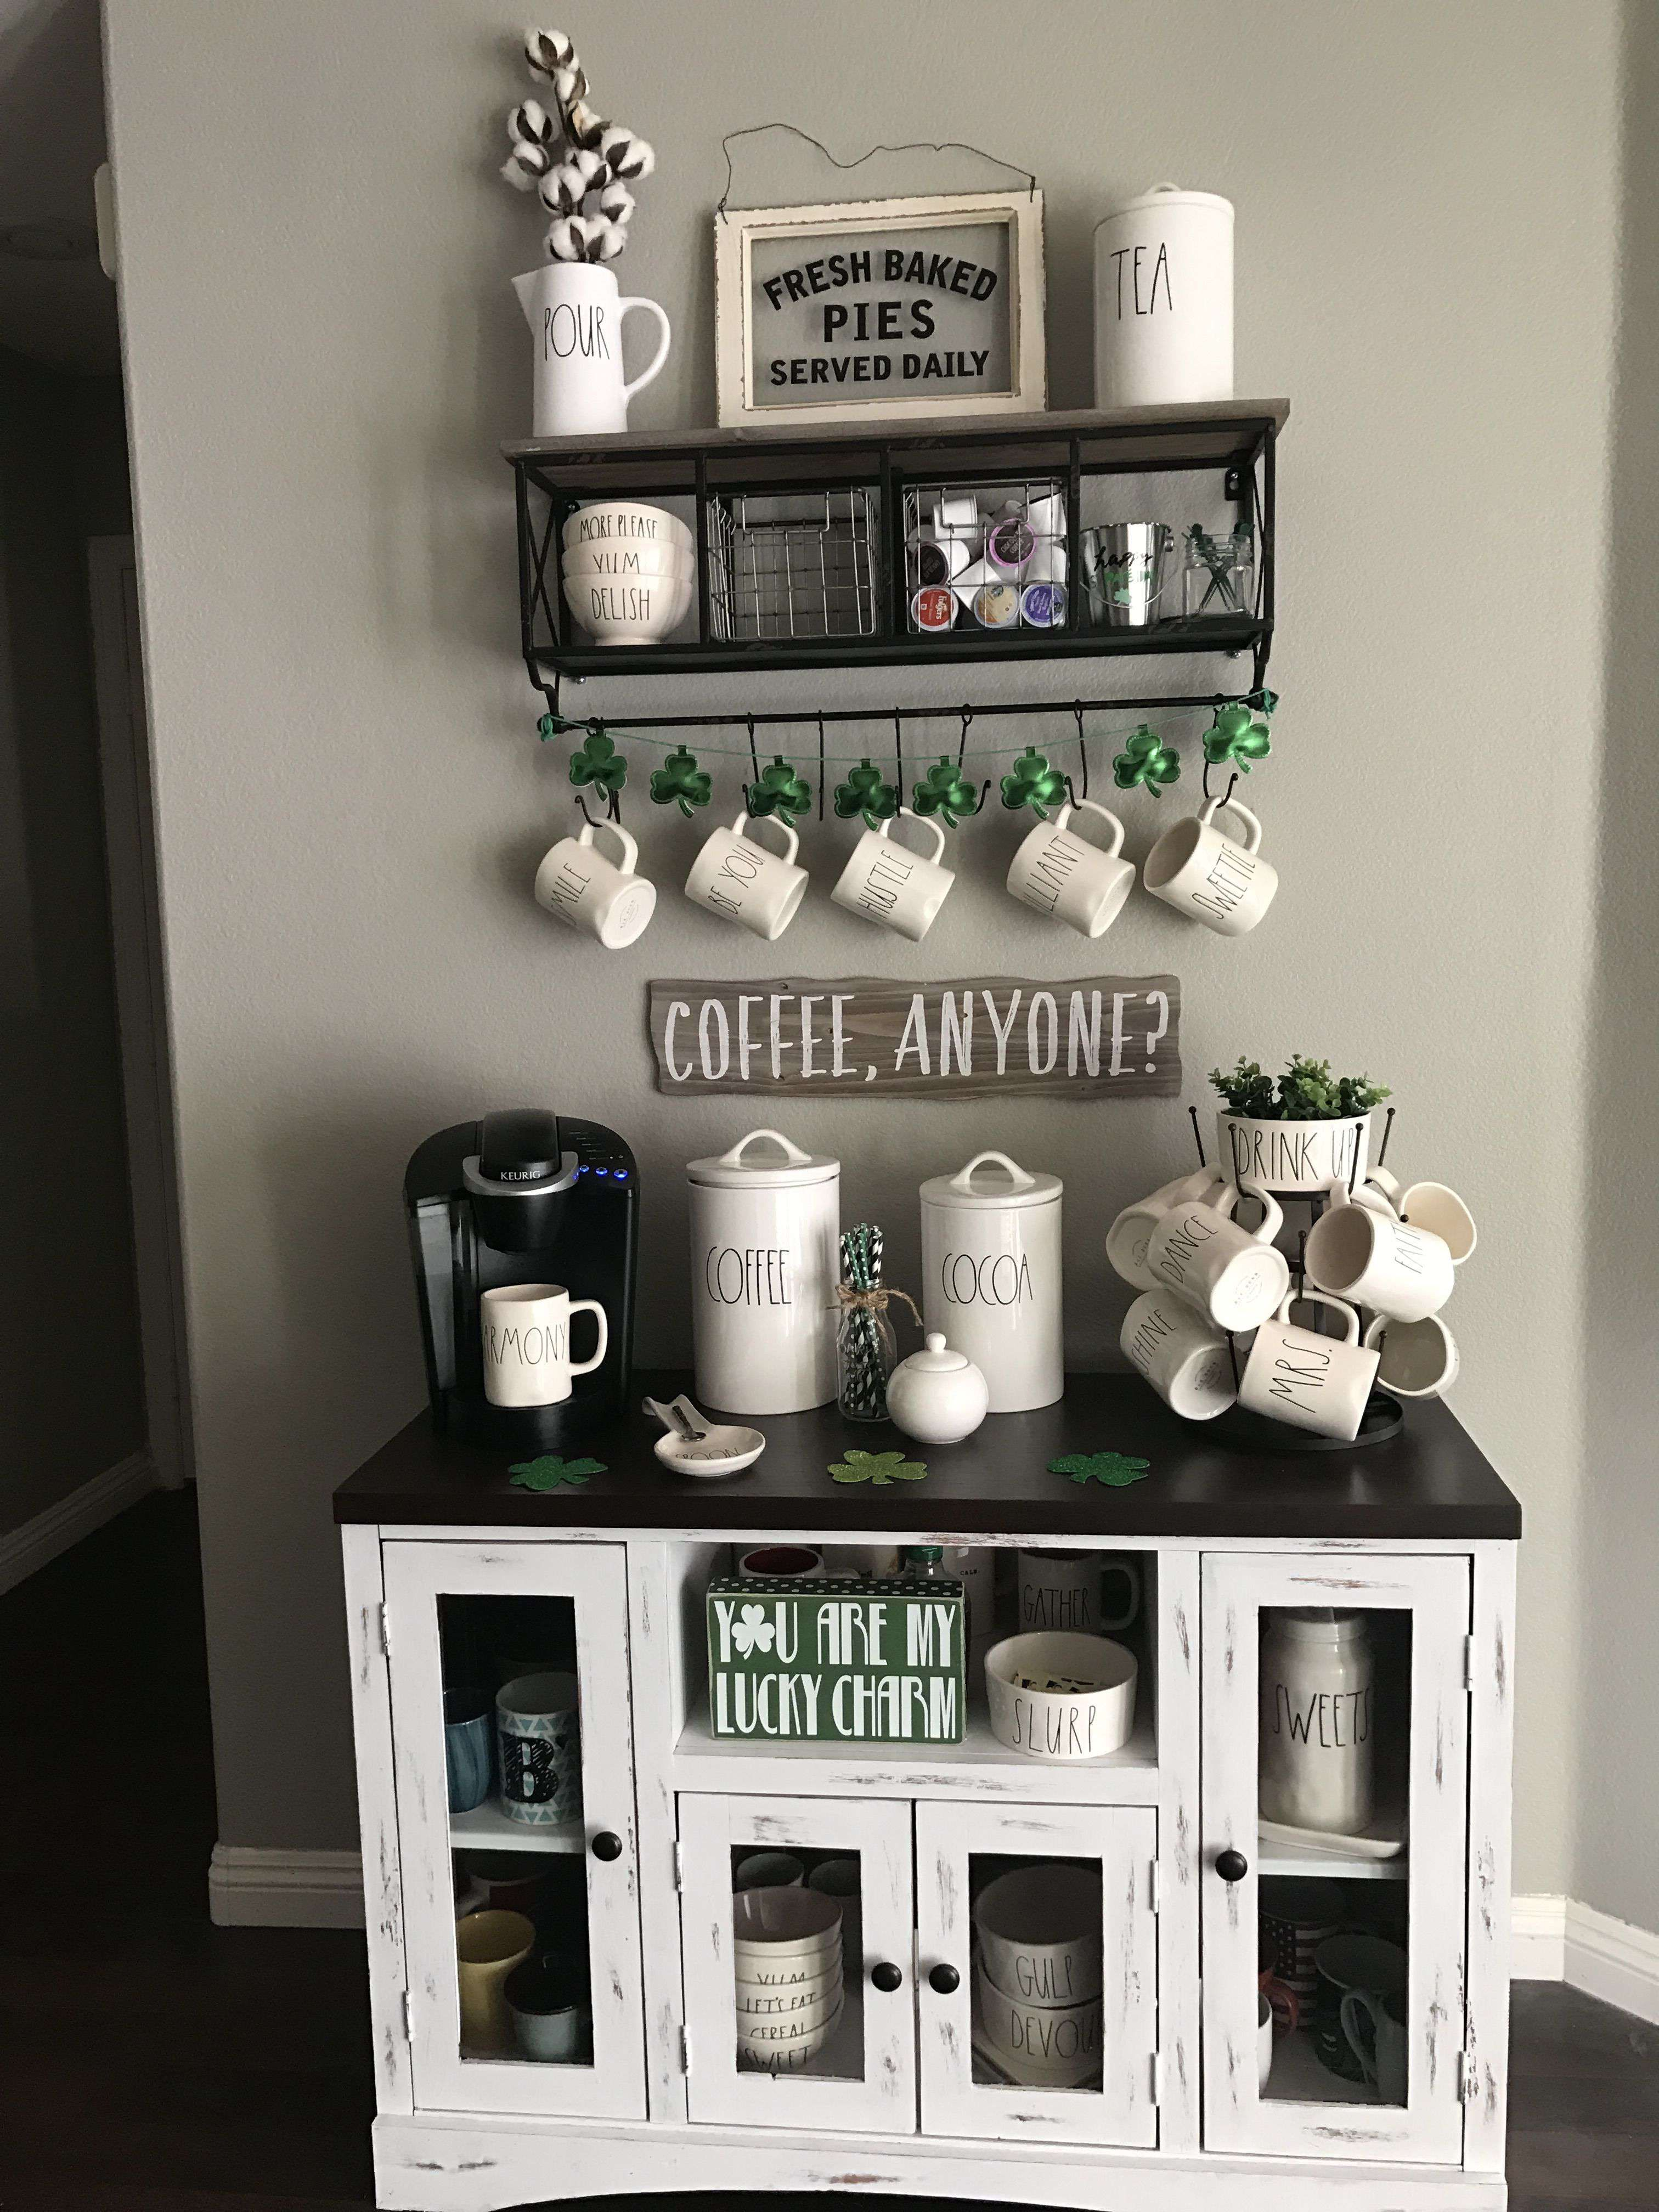 23 Diy Best Corner Coffee Bar Ideas For Your Home Diy Best Corner Coffee Bar Ideas For Coffee Co Coffee Bar Home Farmhouse Coffee Bar Coffee Bars In Kitchen